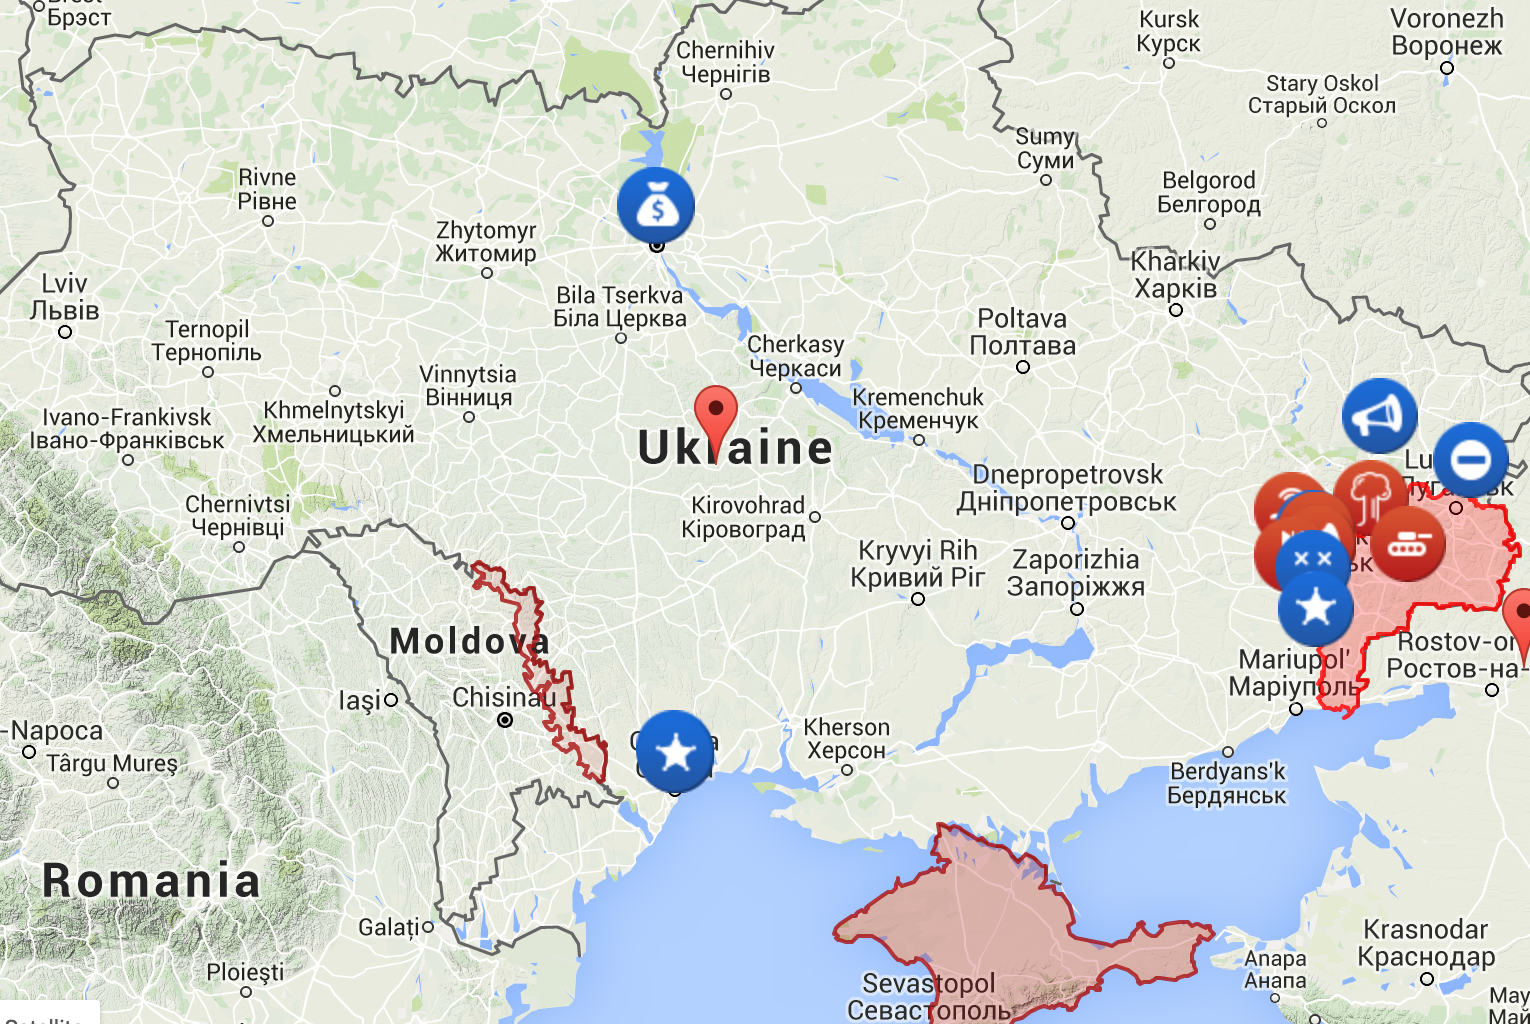 All quiet on the RussianUkraine front as deaths continue with